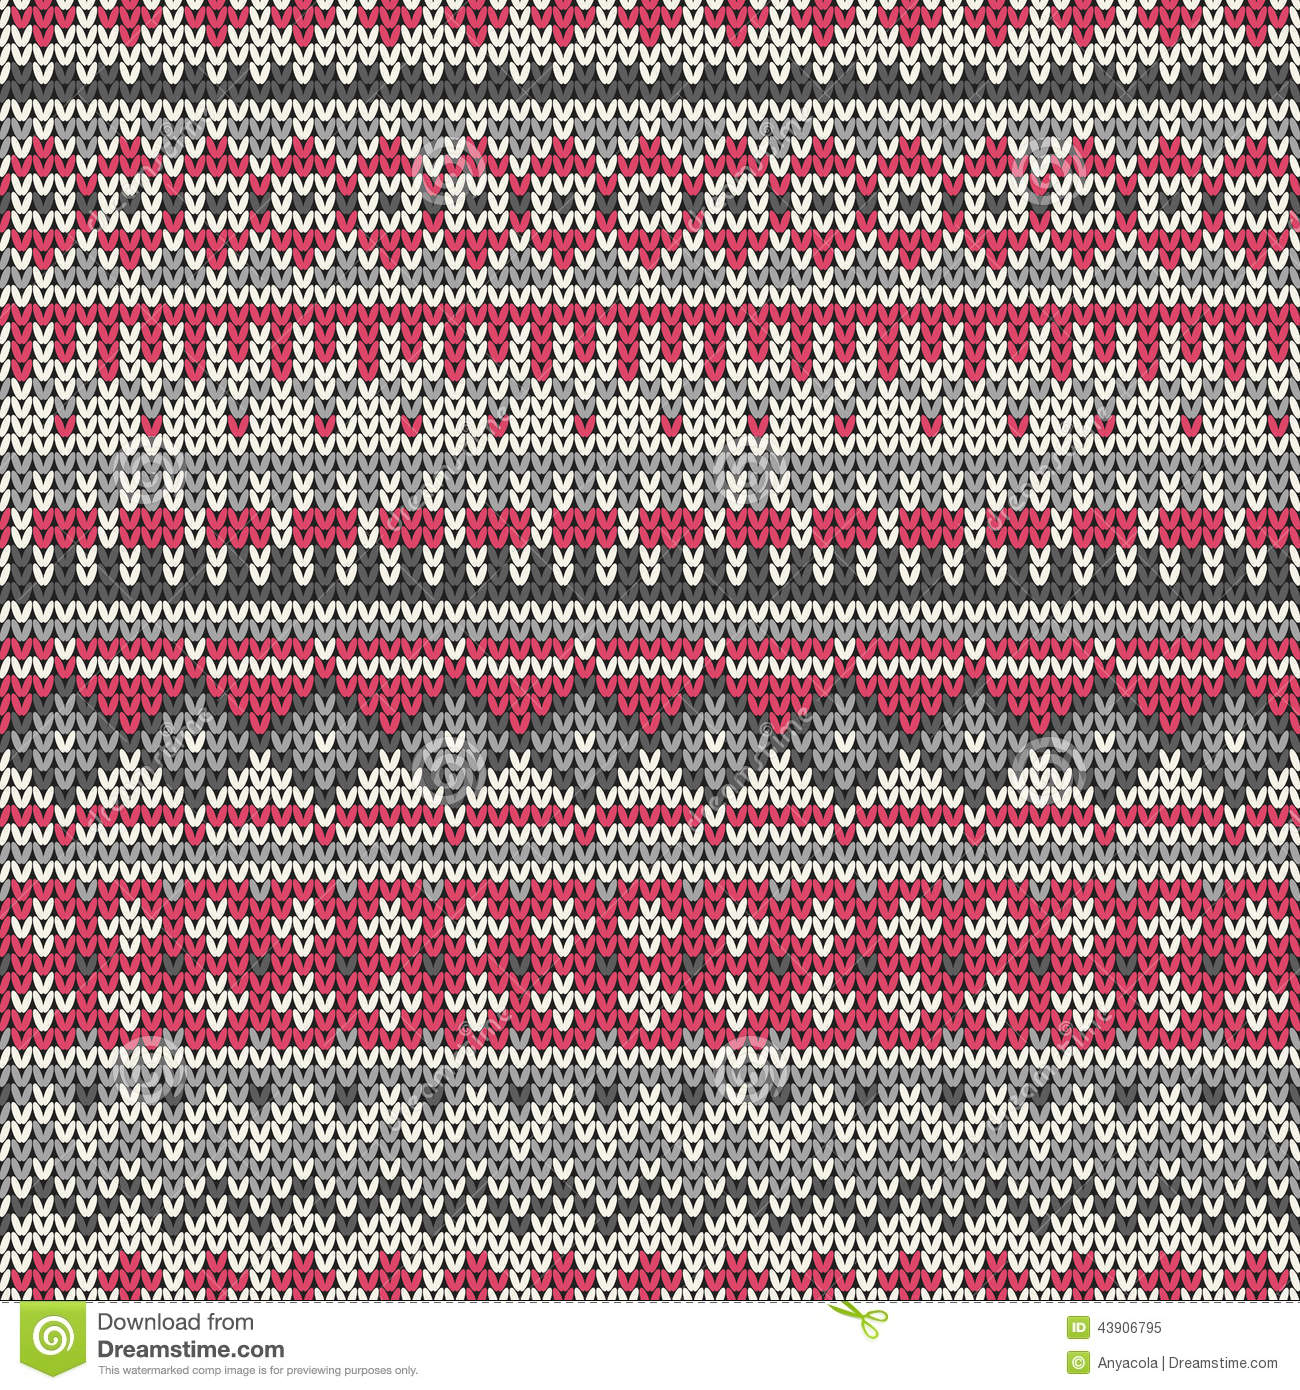 Fair Isle knitting patterns seamless knitted pattern in traditional fair isle style. eps available zmmjqvp